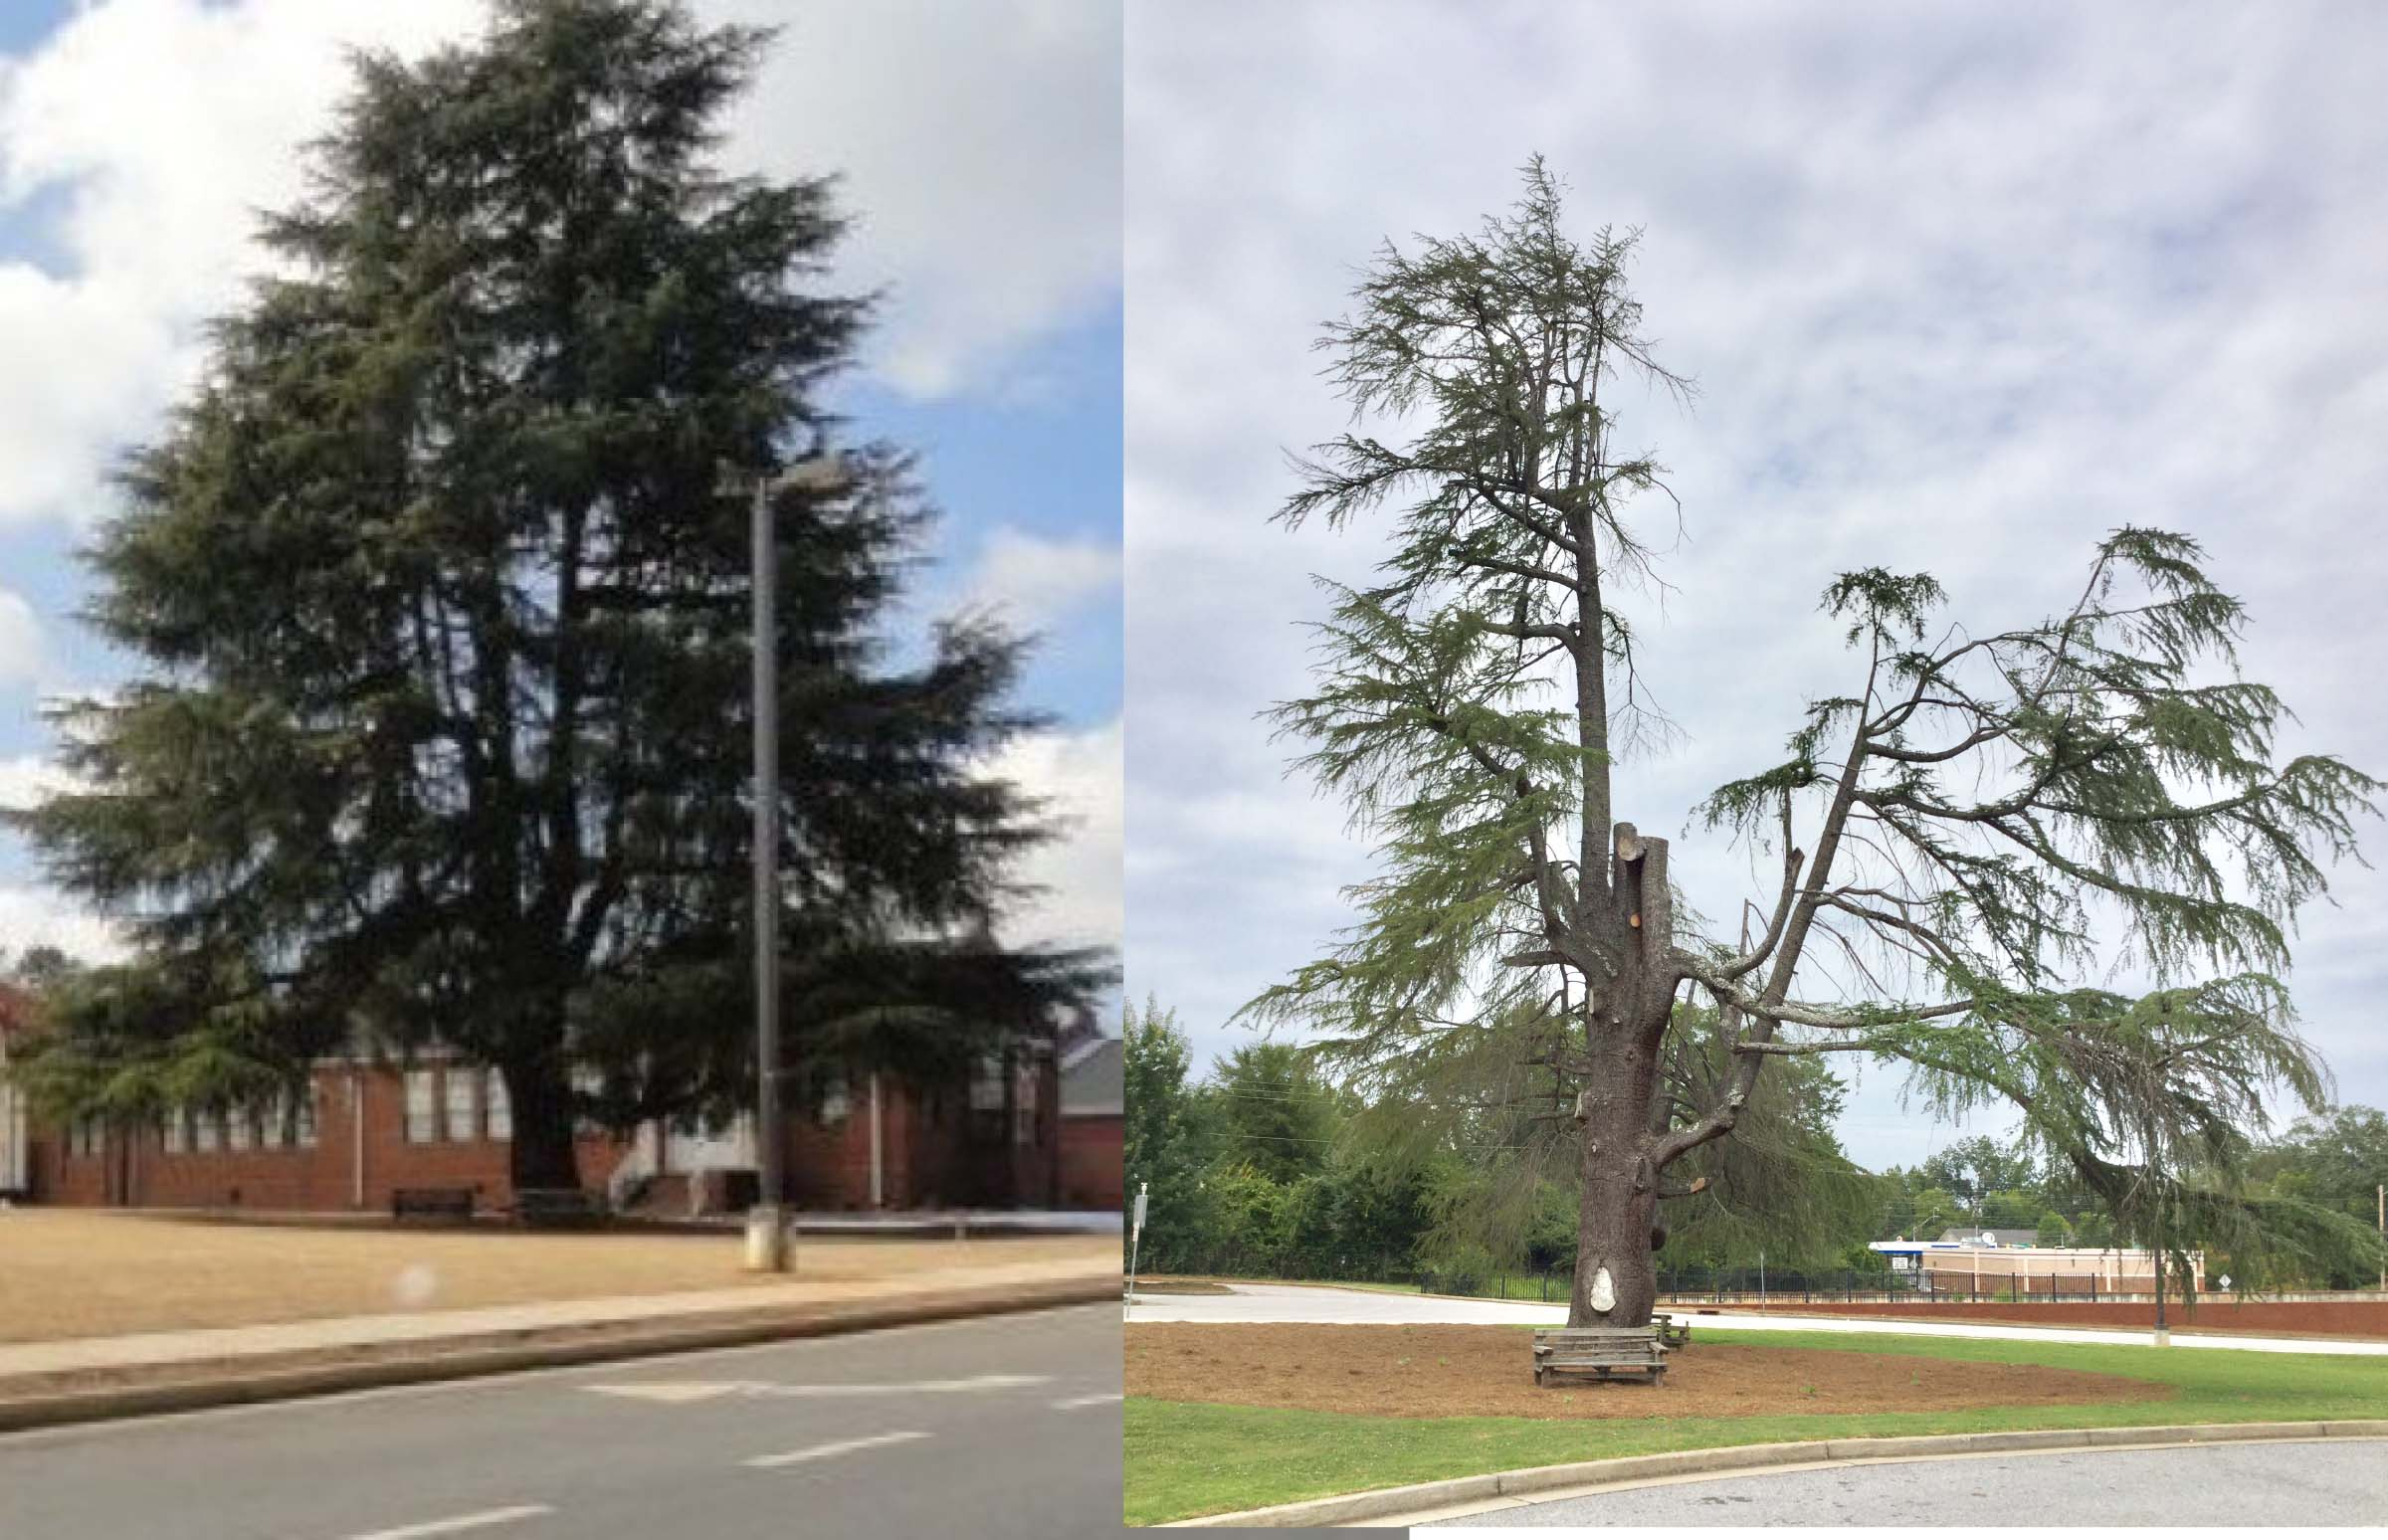 The Deodar Cedar located at Chase Street Elementary before and after the lightning strike.